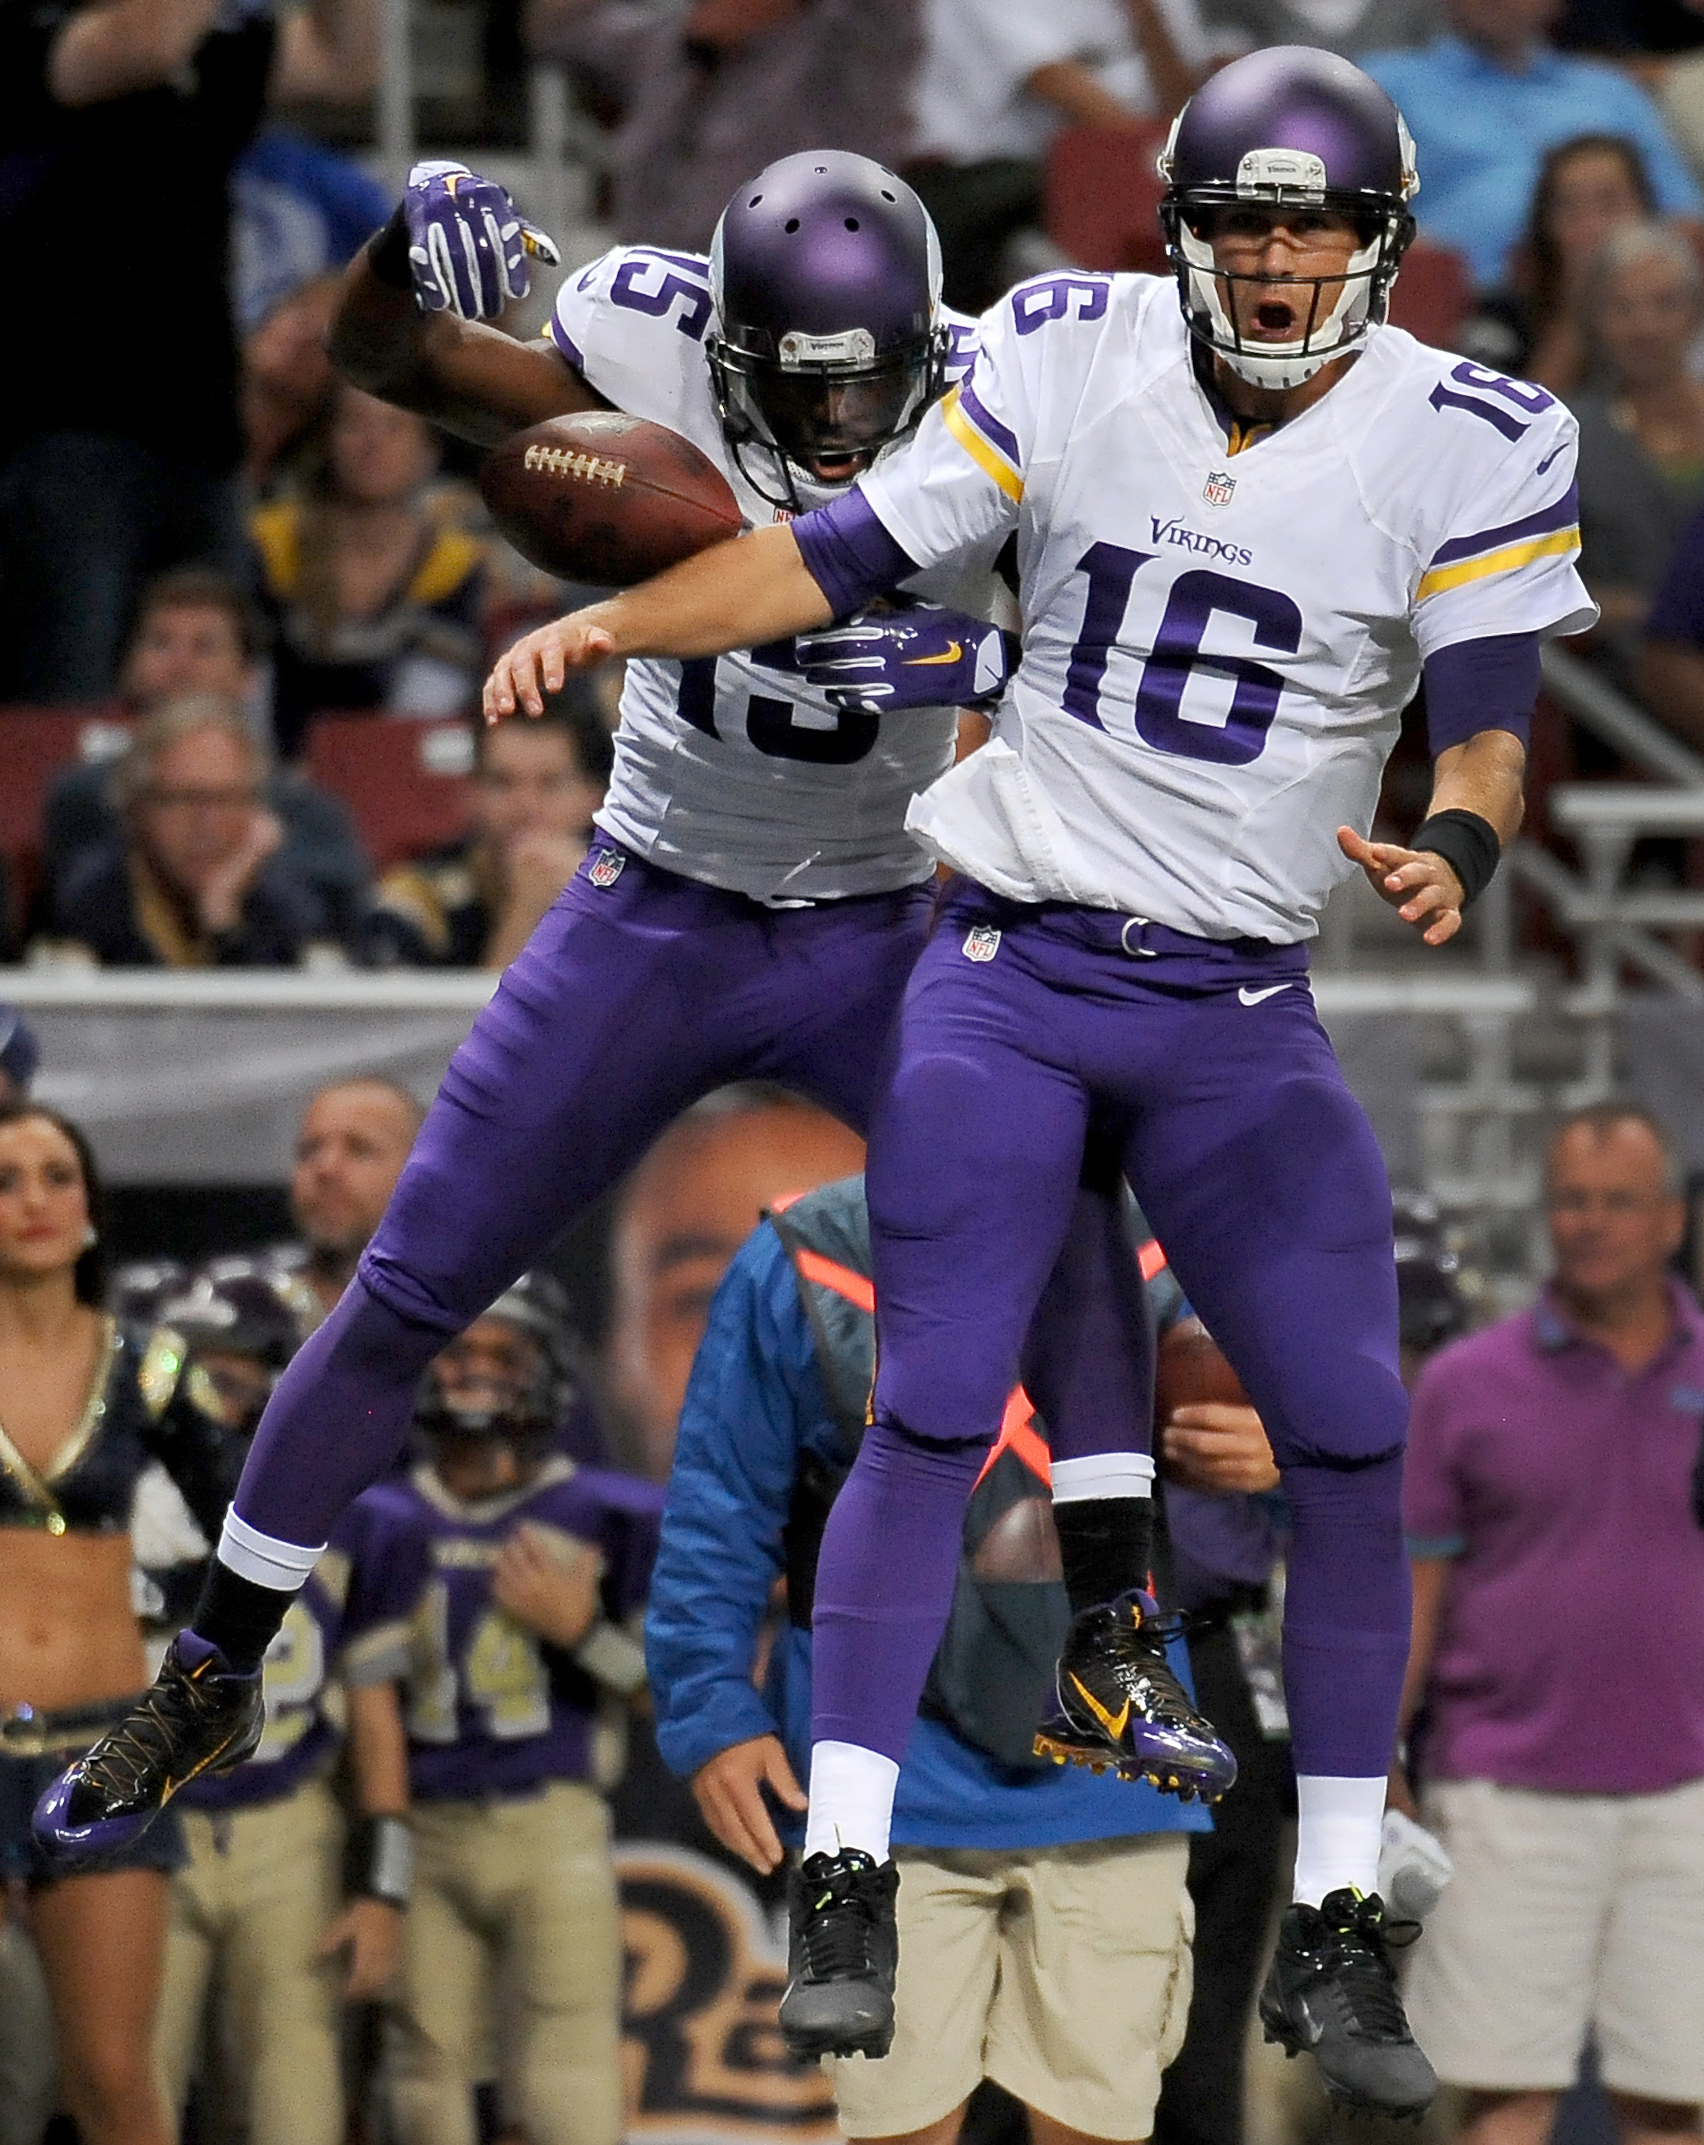 FILE - In this Sept. 7, 2014, file photo, Minnesota Vikings quarterback Matt Cassel, right, celebrates after throwing an 8-yard touchdown pass to wide receiver Greg Jennings, left, during the second quarter an NFL football game against the St. Louis Rams